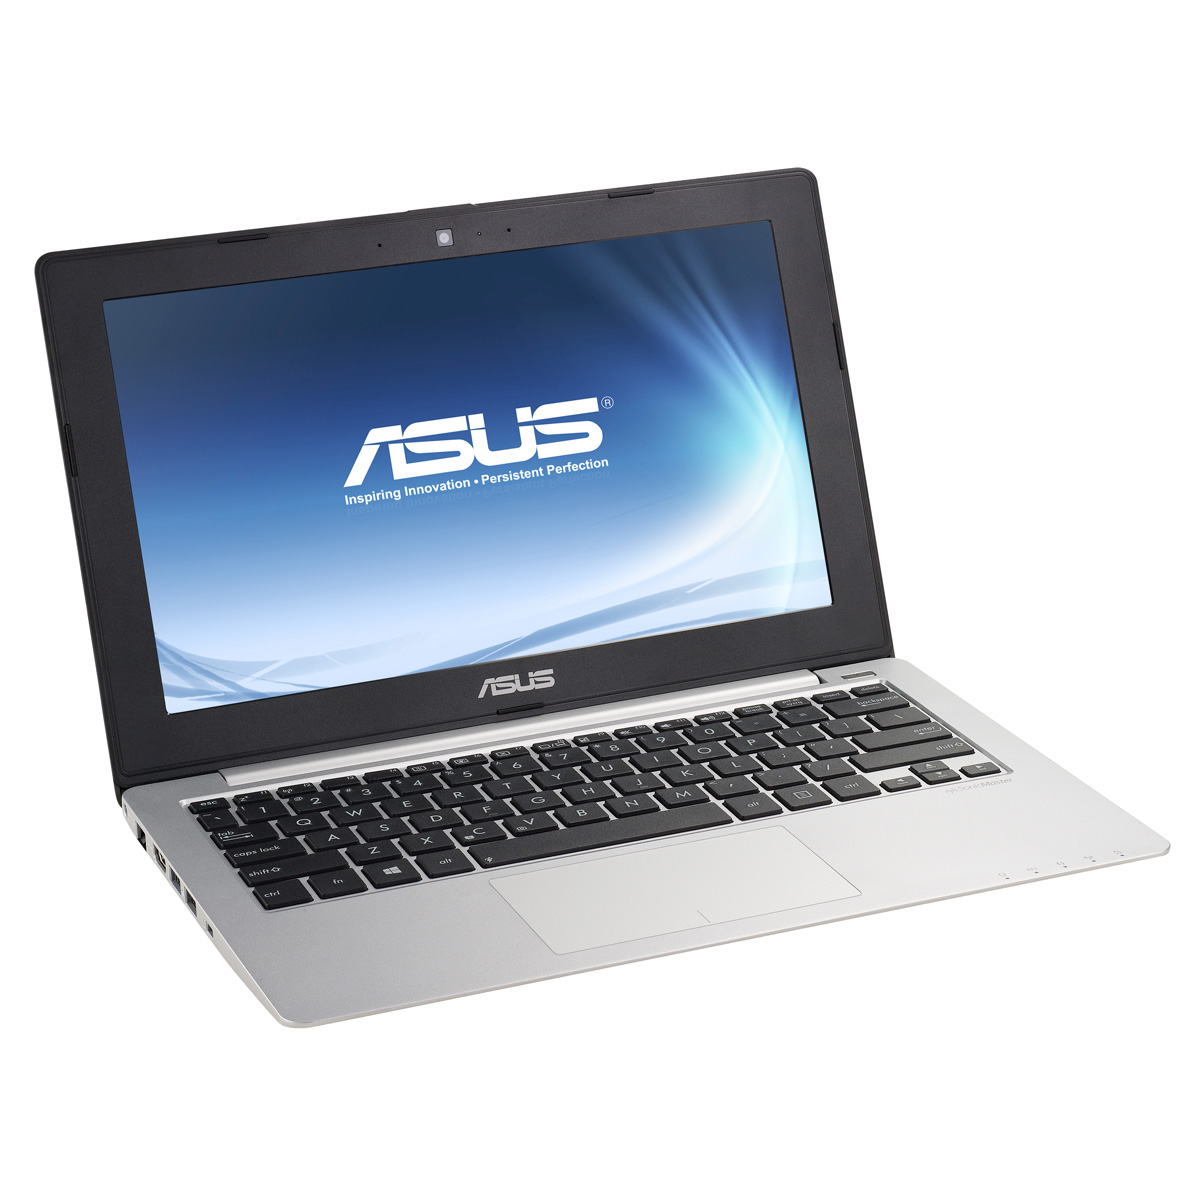 asus f201e kx167h bleu f201e kx167h achat vente pc portable sur. Black Bedroom Furniture Sets. Home Design Ideas